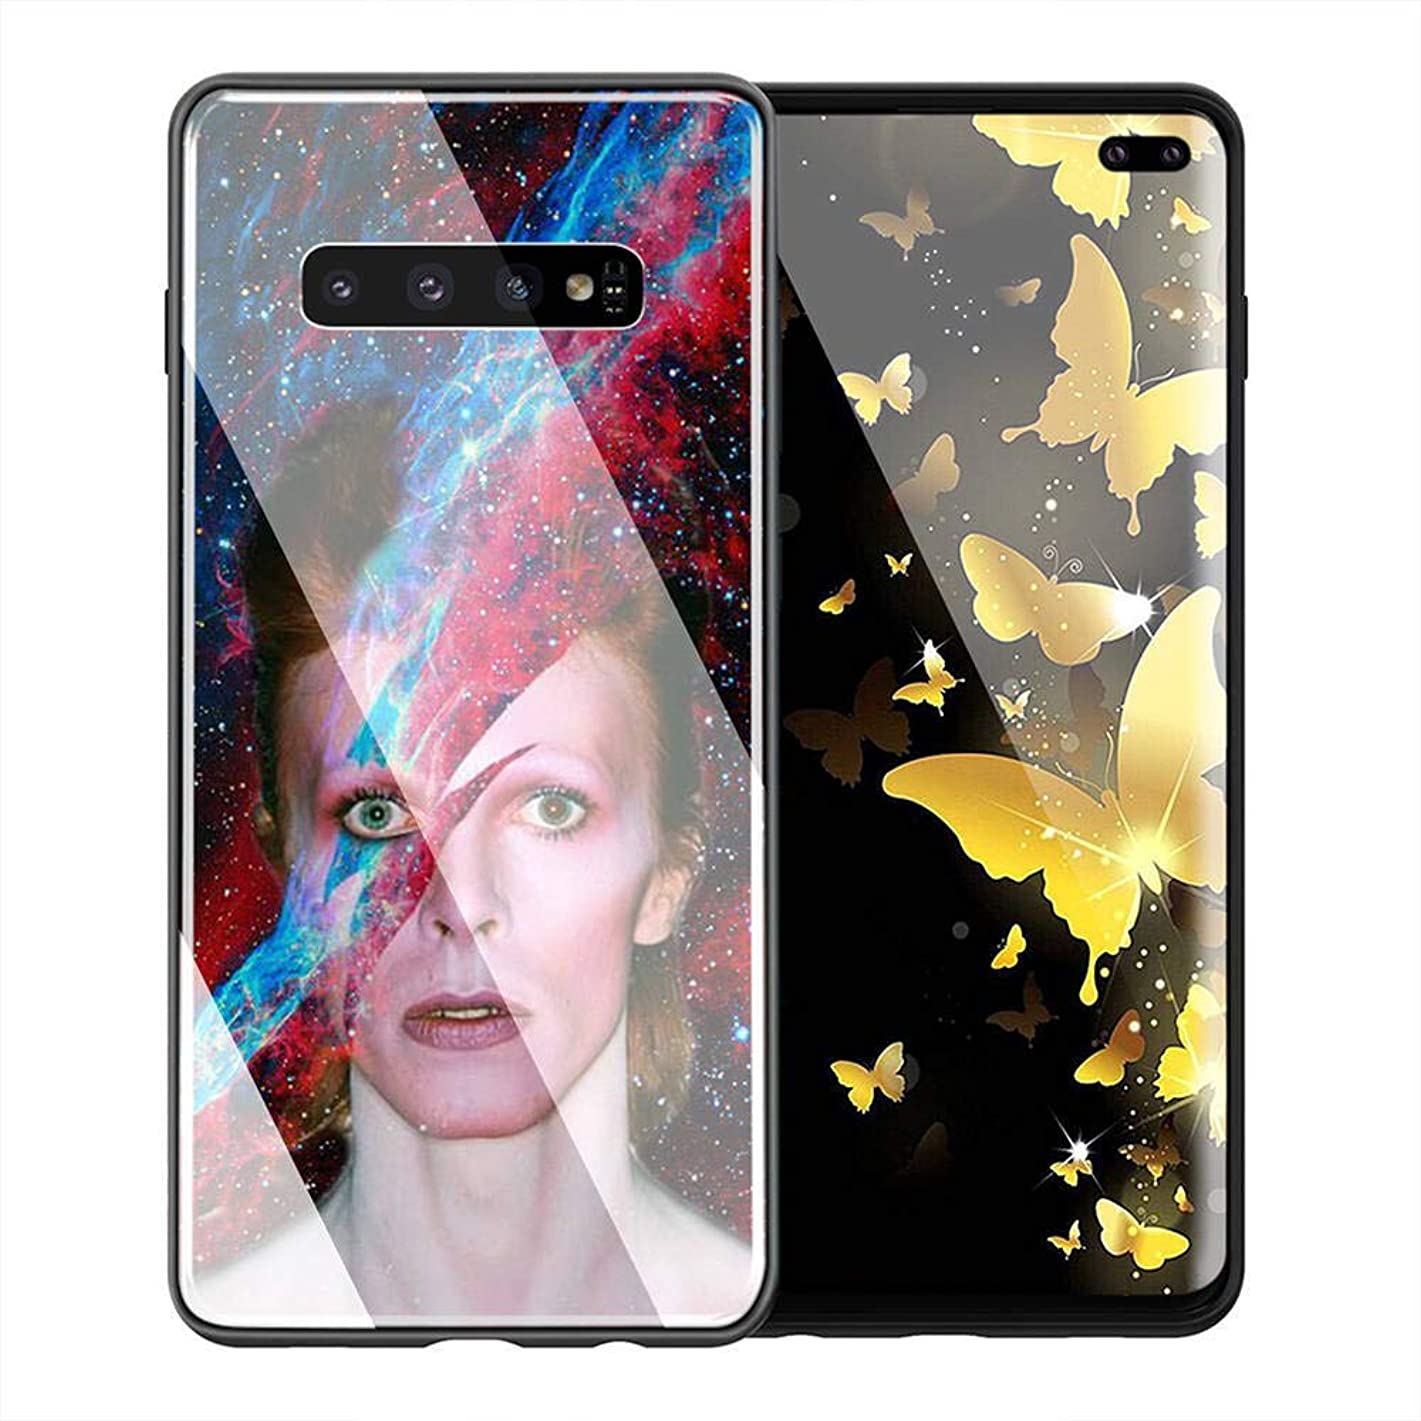 Samsung Galaxy S9 Case, Tempered Glass Back Cover Soft Silicone Bumper Compatible with Samsung Galaxy S9 AMB-14 David Bowie